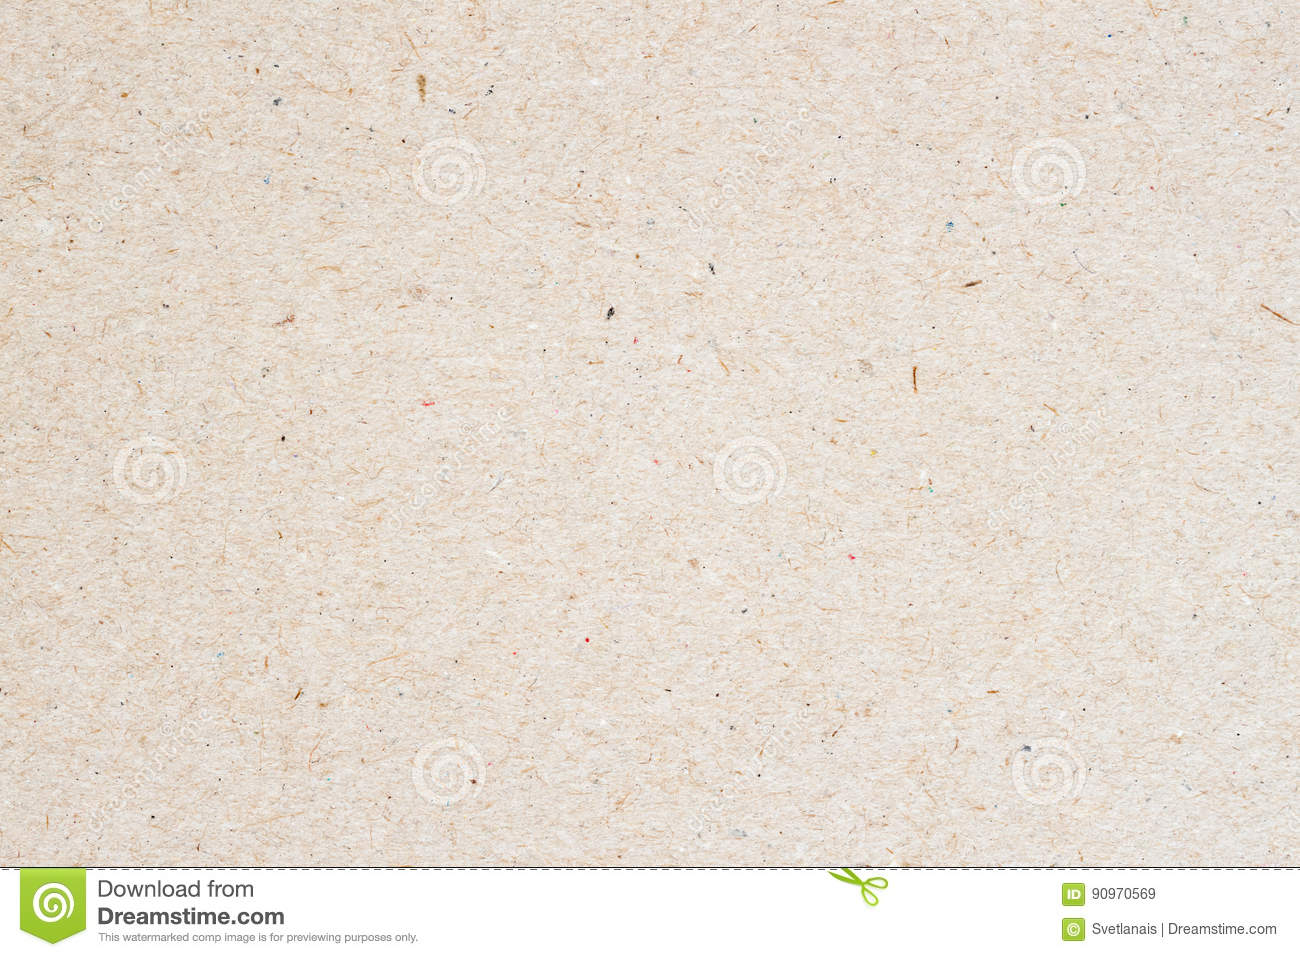 Texture of old organic light cream paper, background for design with copy space text or image. Recyclable material, has